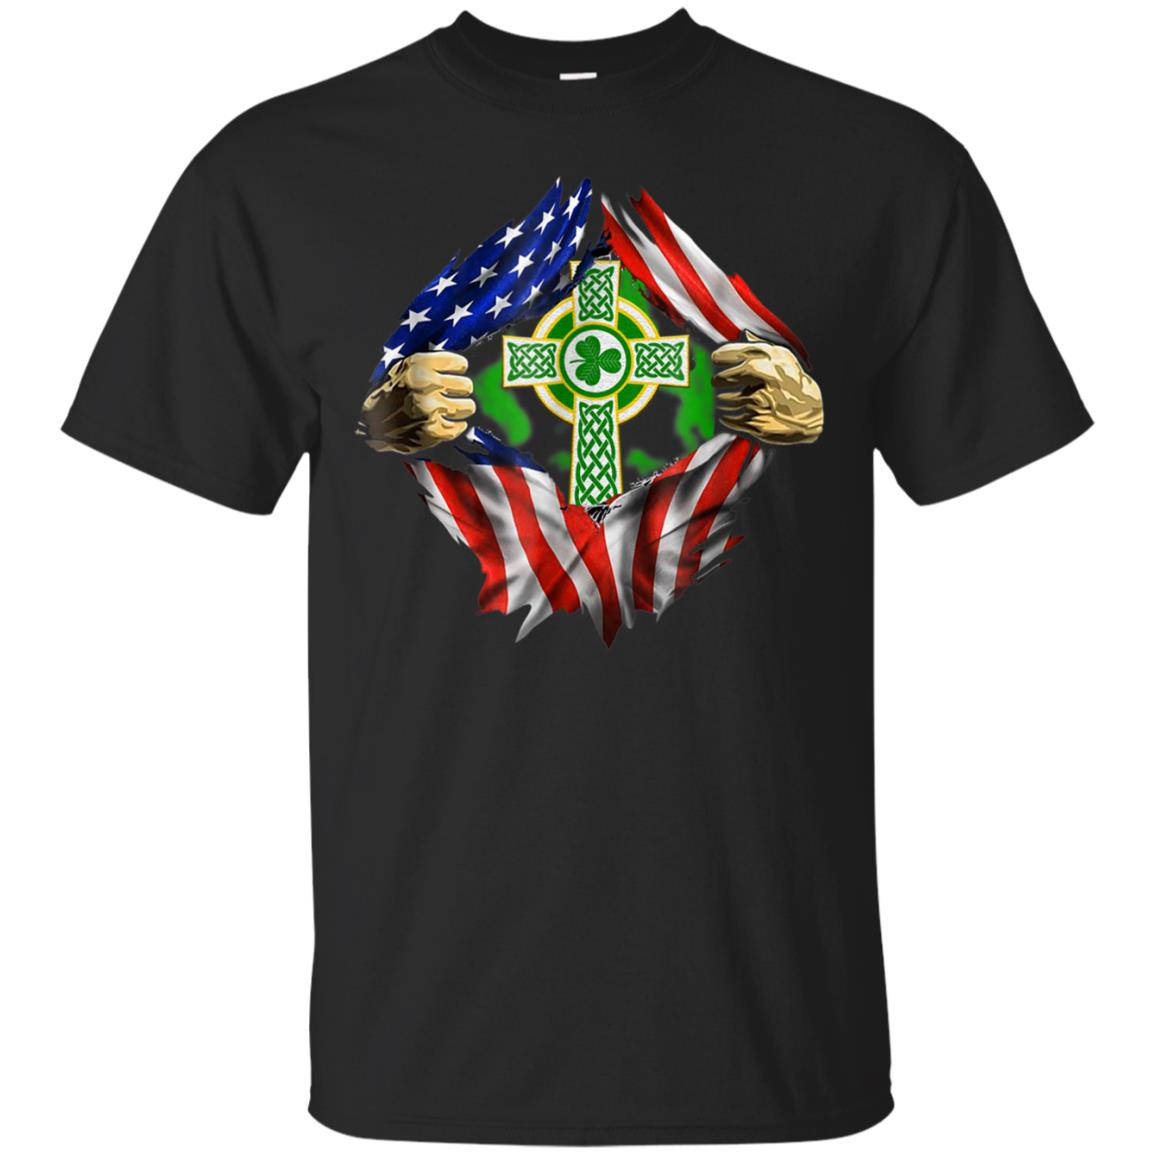 AMERICAN IRISH BLOOD INSIDE ME TSHIRT 99promocode